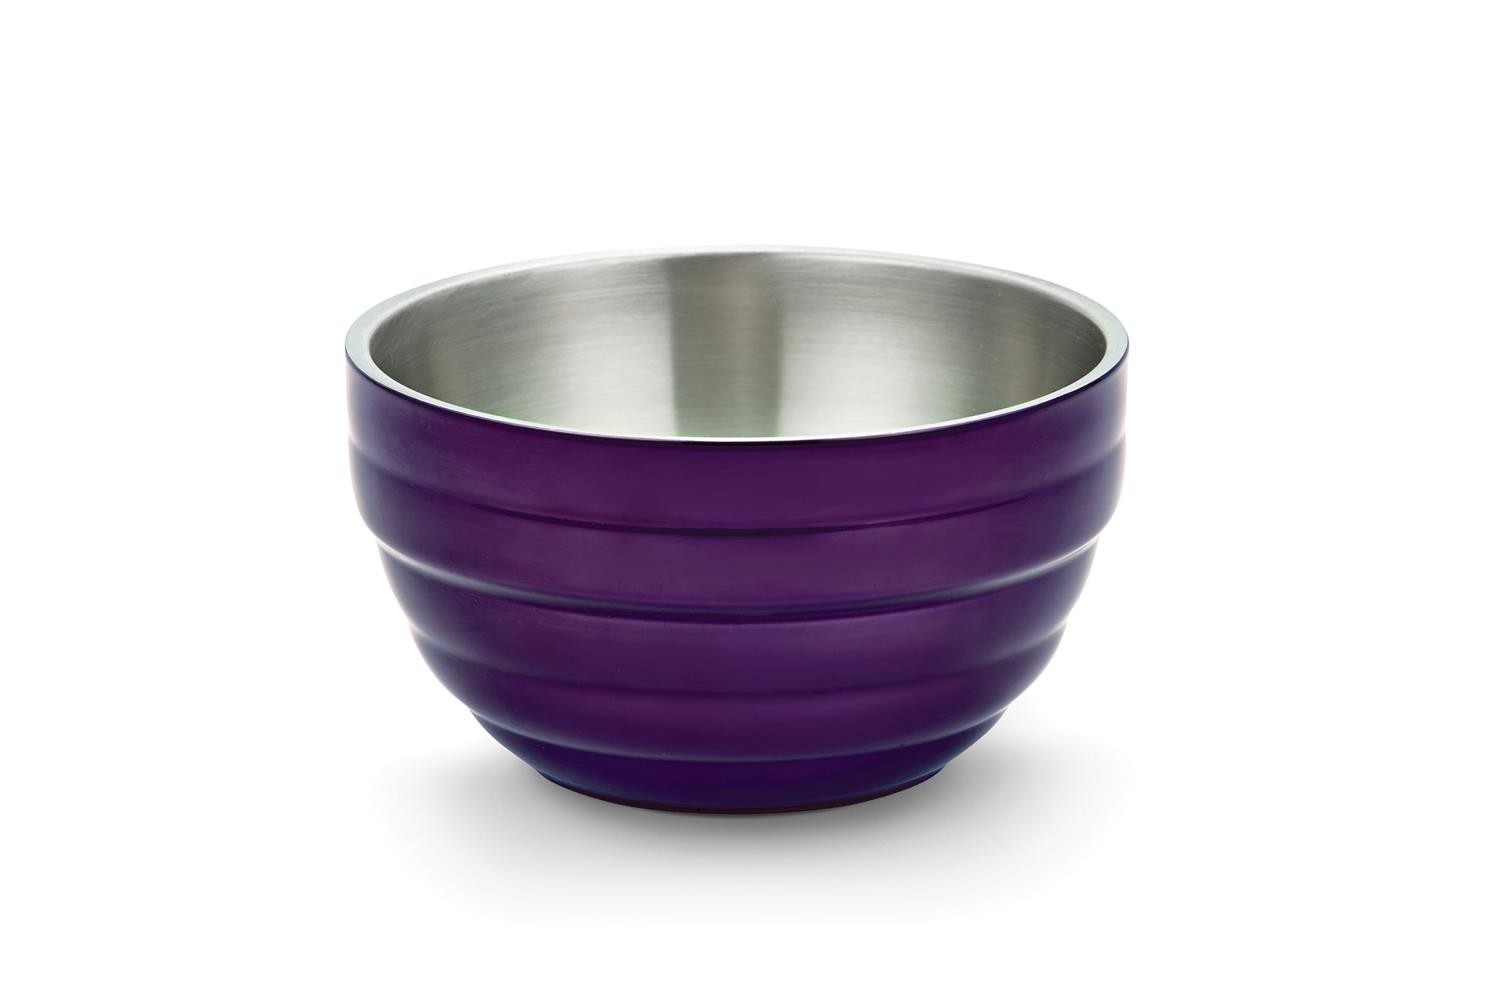 Vollrath 4659065 Round Double-Wall Bowl - Passion Purple 1.7qt (1.6L)